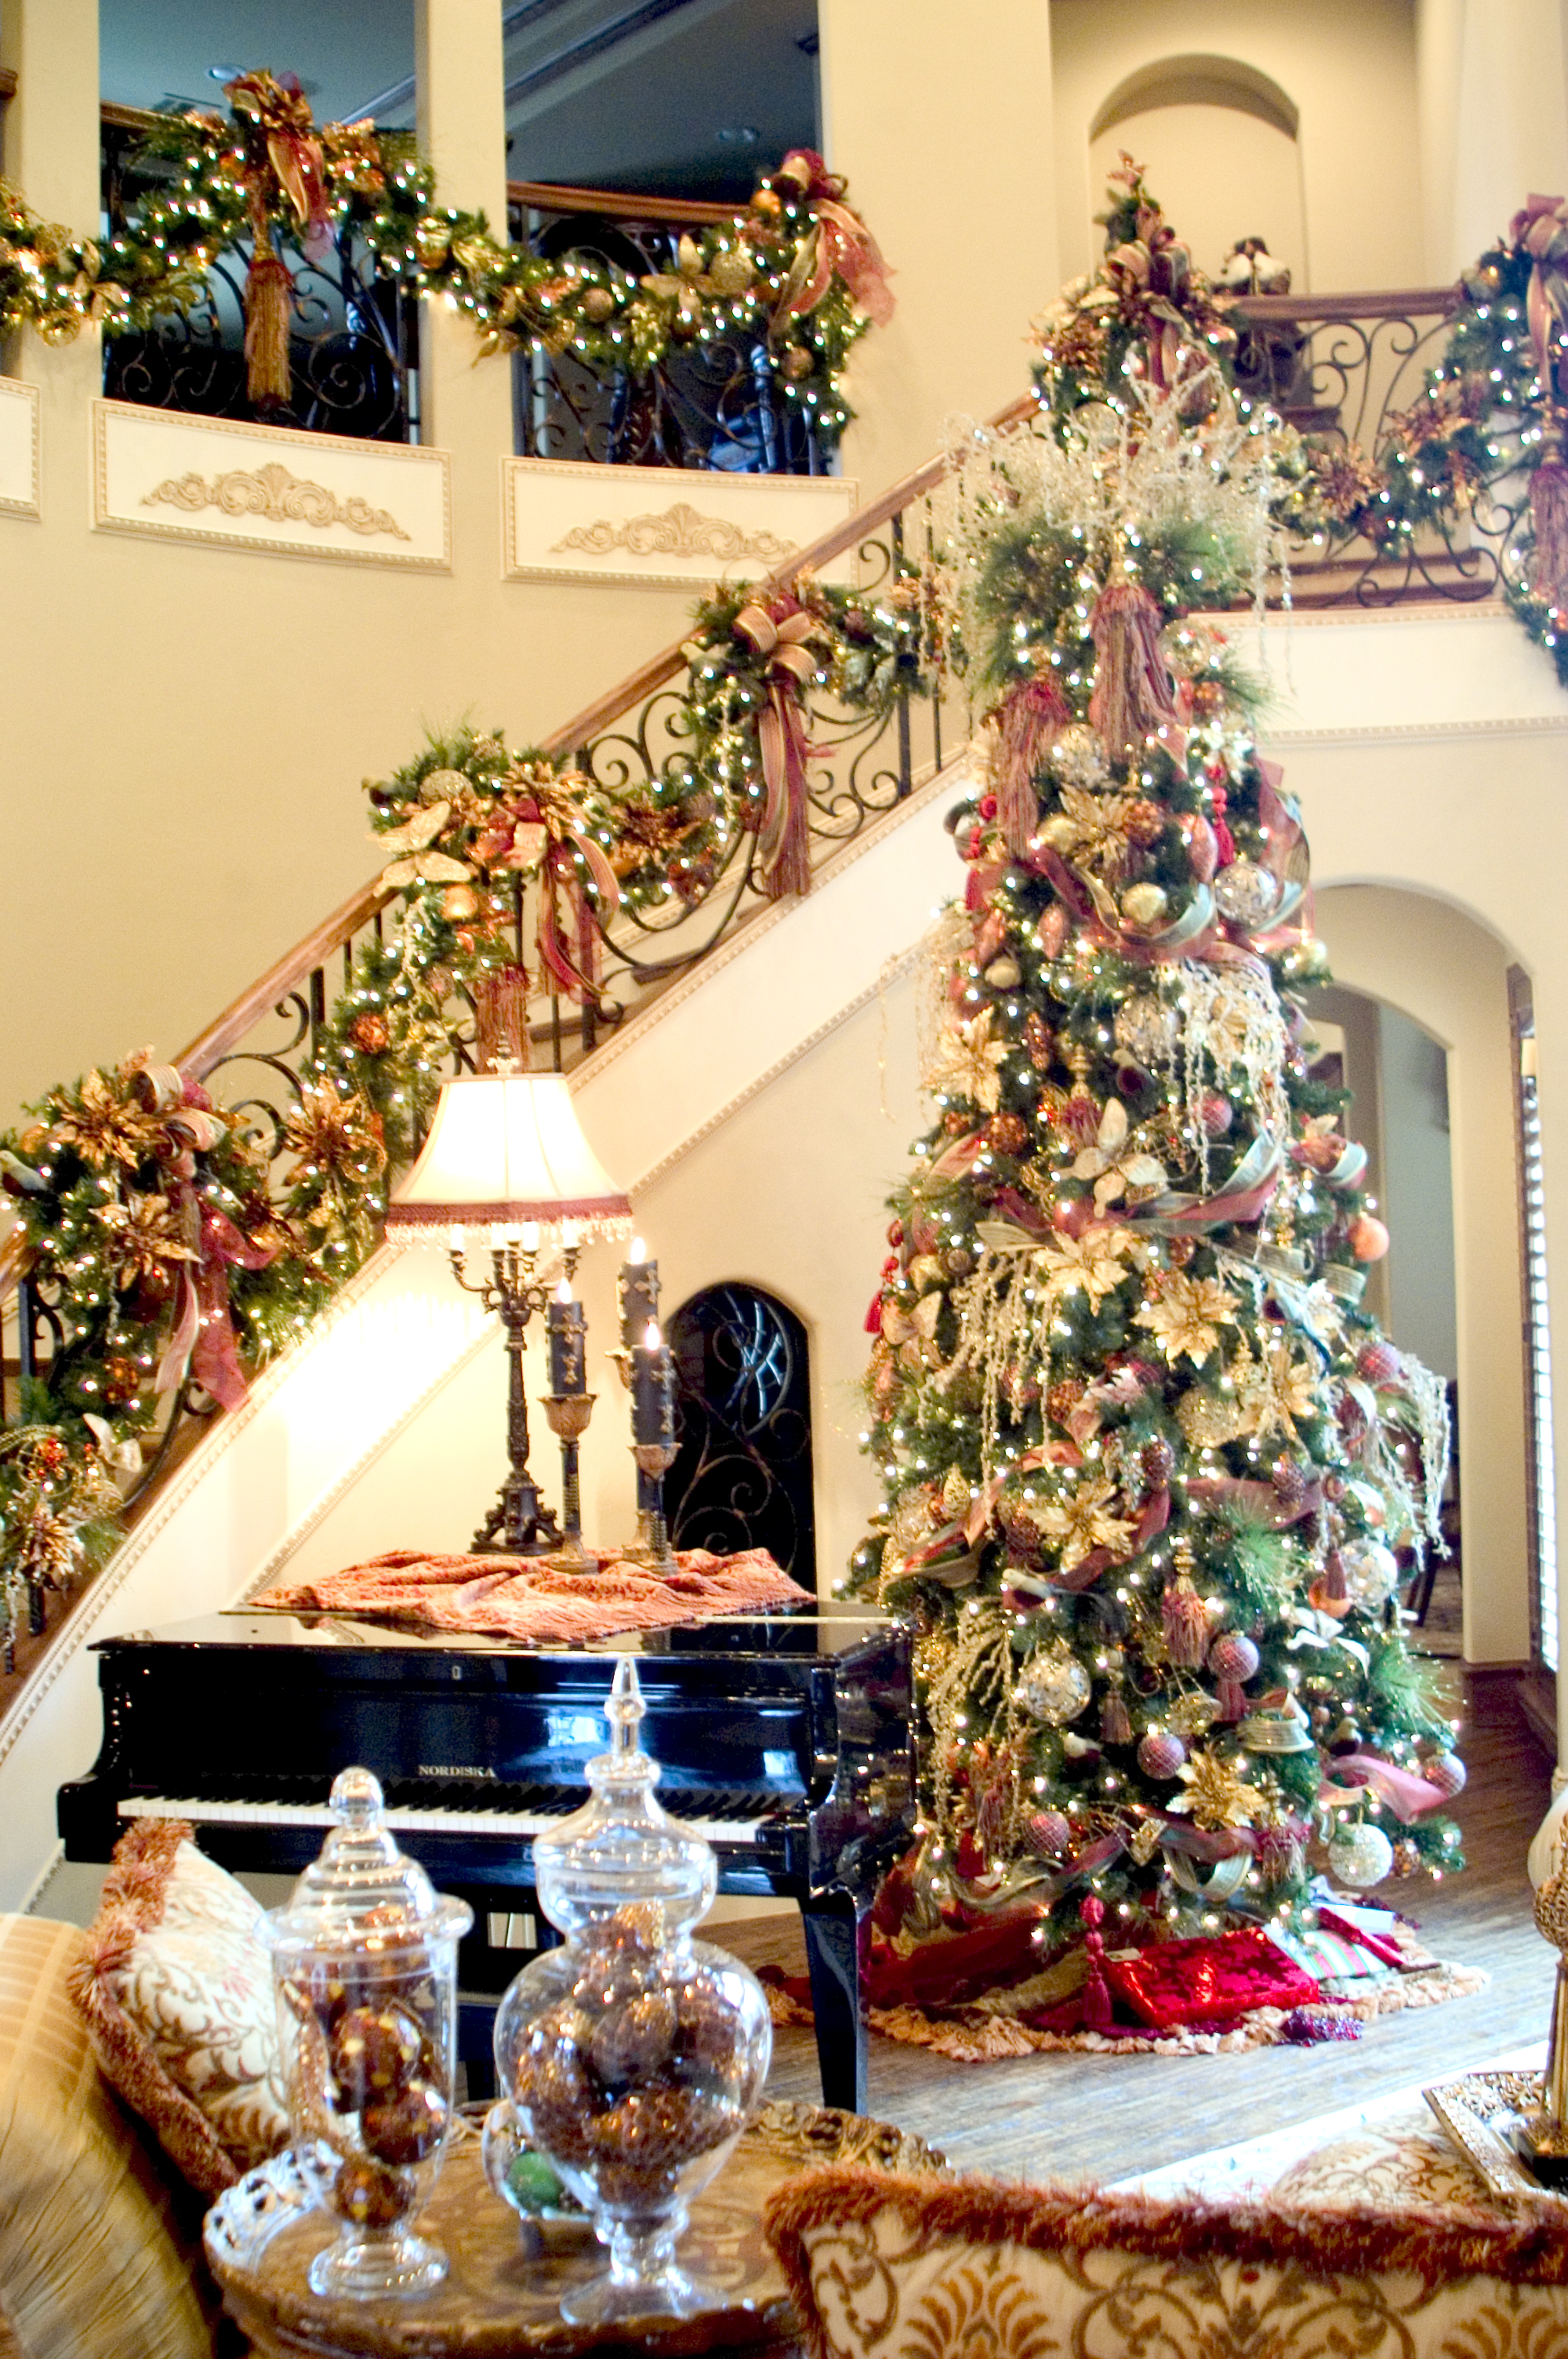 Christmas Interior Design Why Hire A Christmas Decorator For Your Home Or Commercial